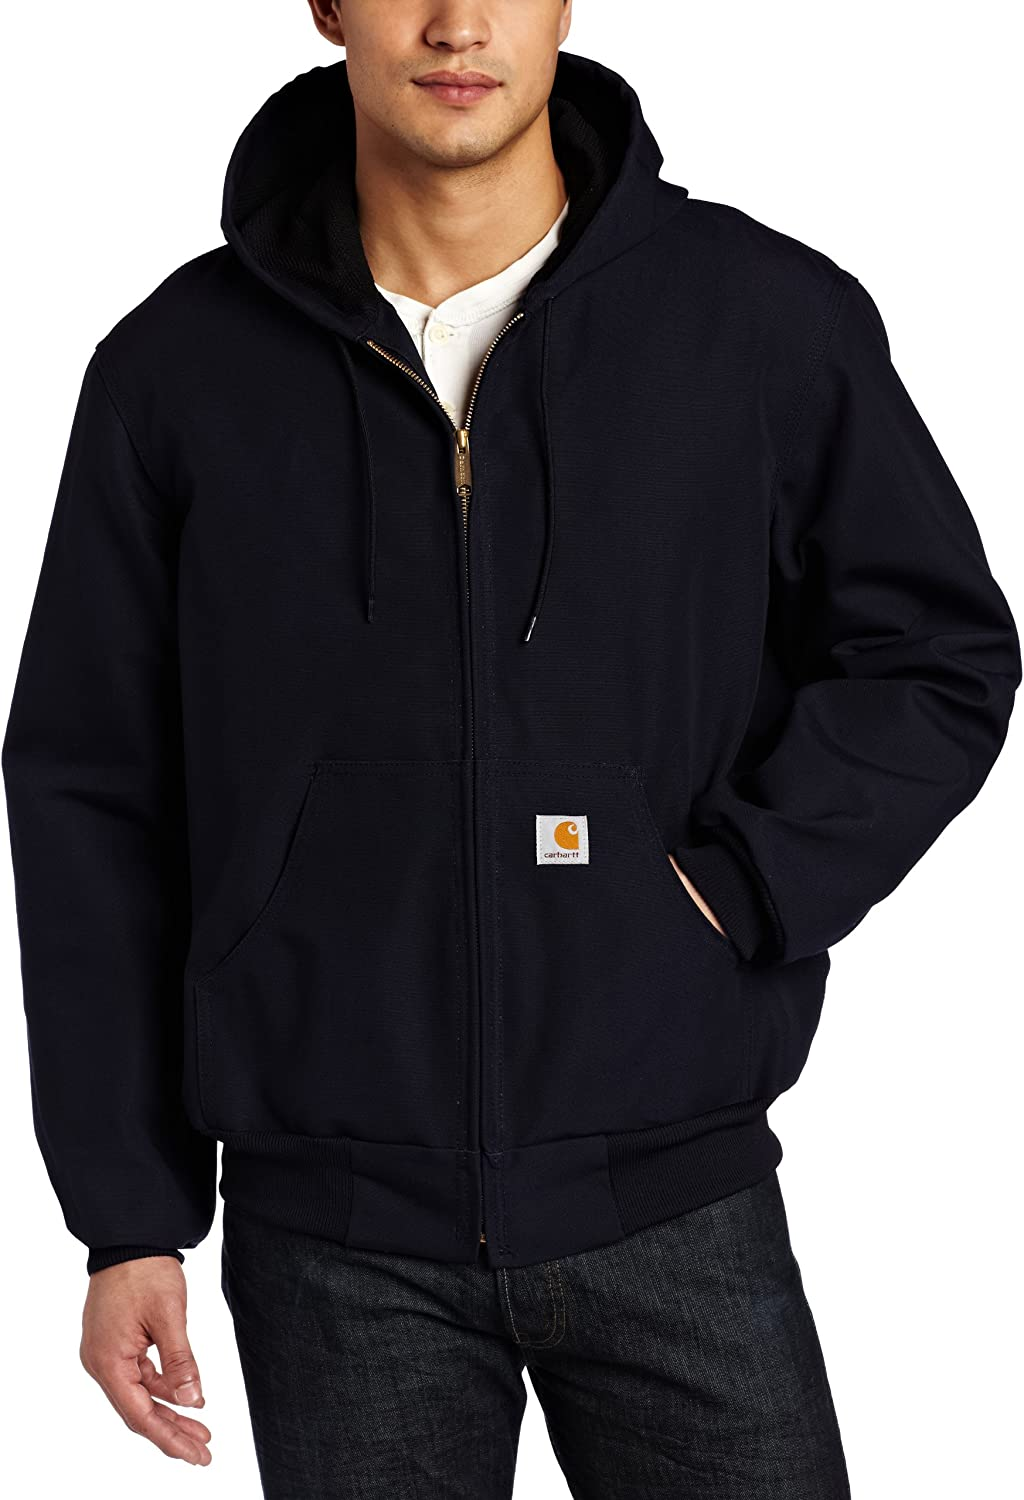 B0000WL0Y8 Carhartt Men's Big & Tall Thermal-Lined Duck Active Hoodie Jacket J131 91B5gW1QSOL